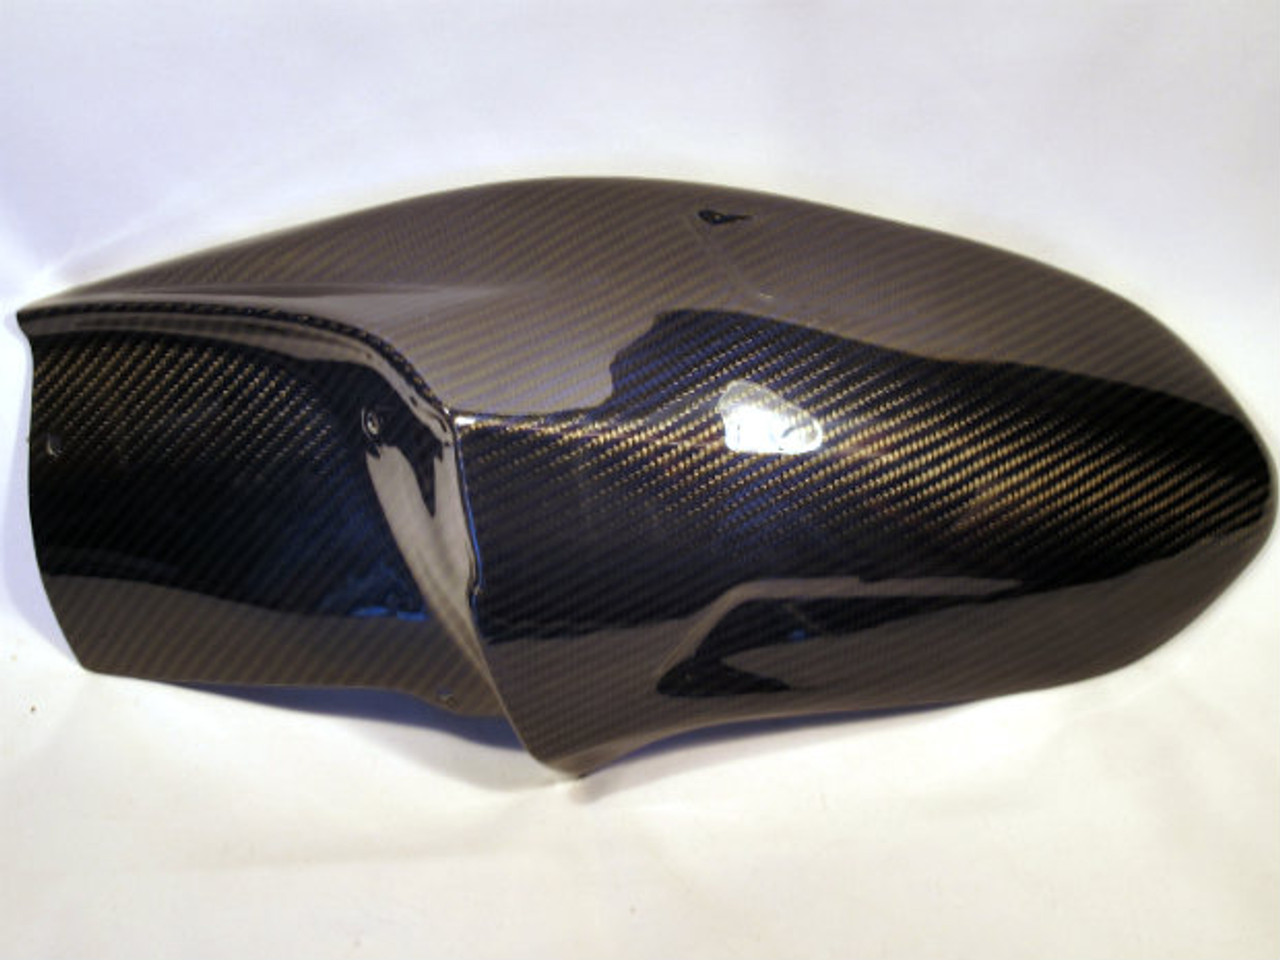 Rear Hugger in Carbon with Fiberglass for MV Agusta F3 , Brutale 675/800, Dragster 14-15 in Glossy Twill Weave Carbon Fiber